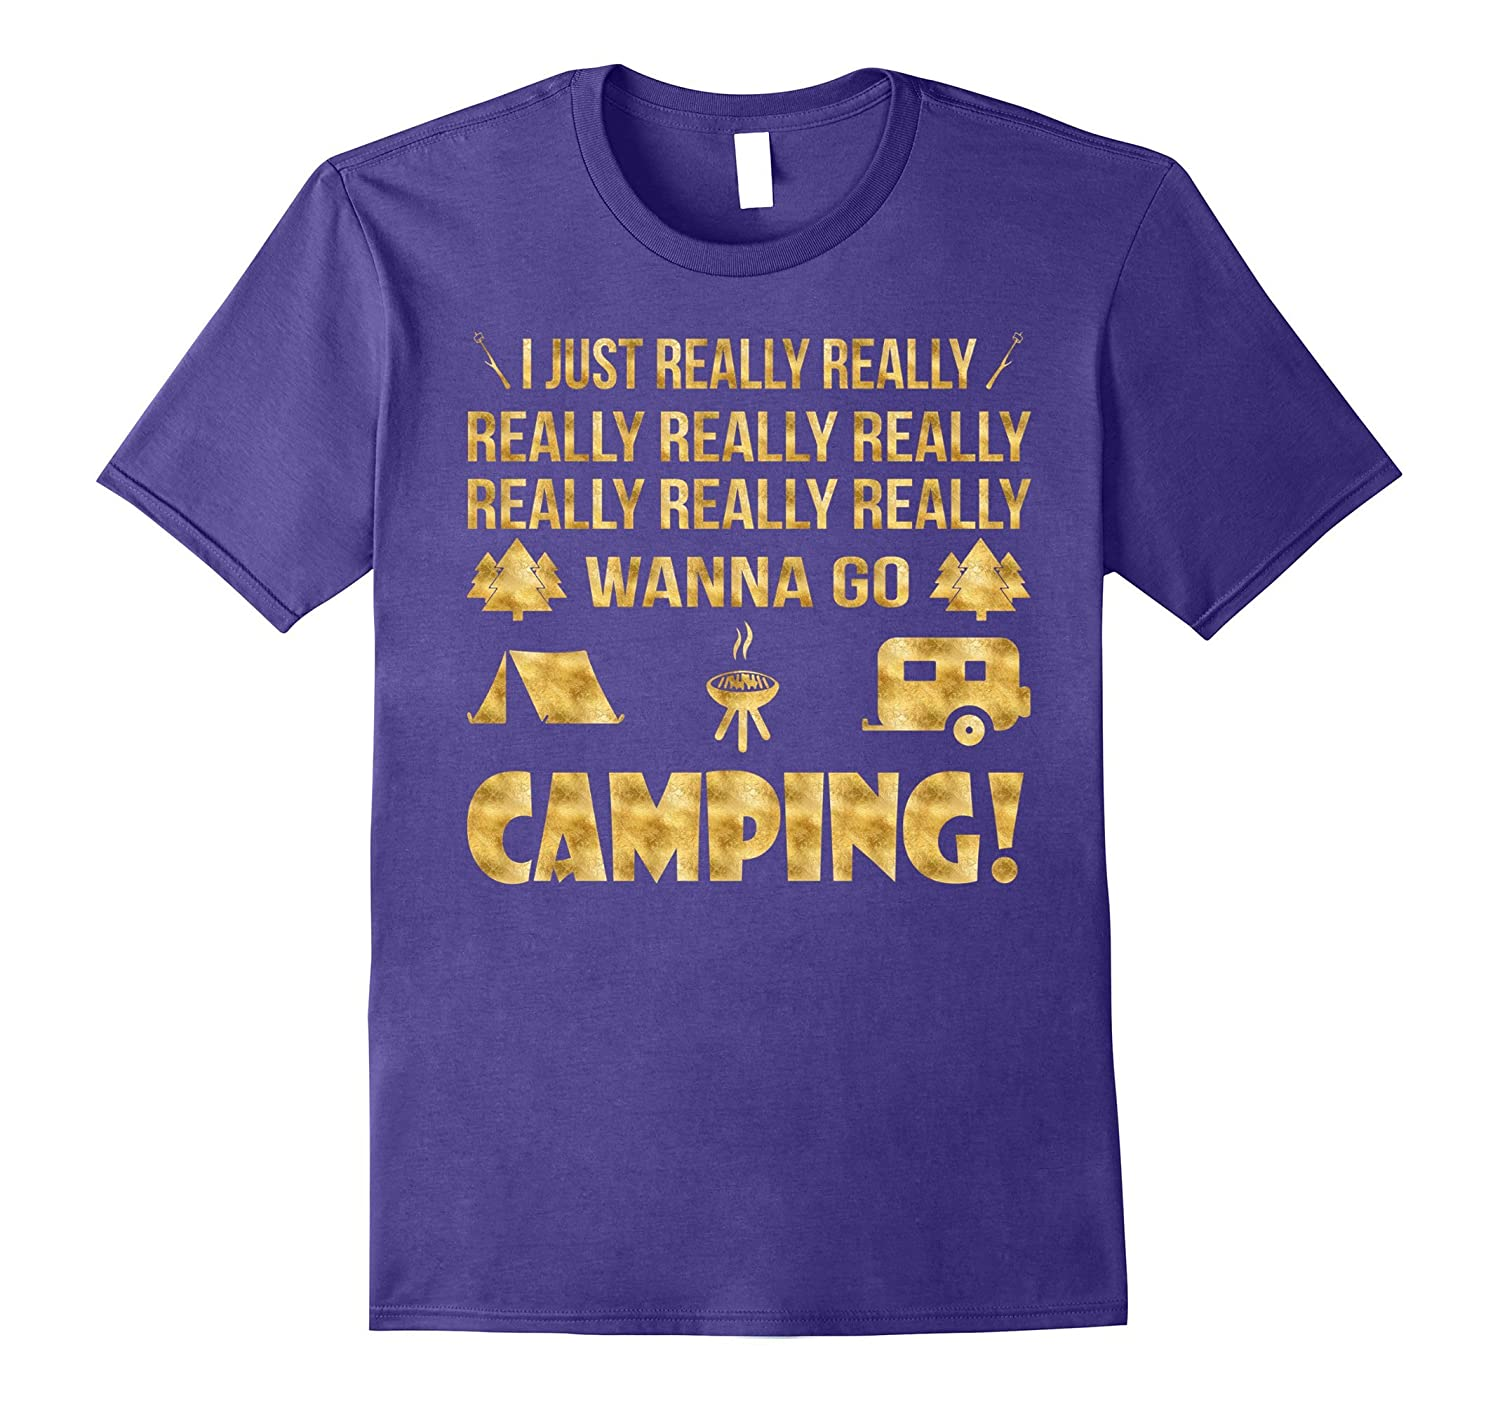 I just really really wanna go Camping T-Shirt Gold Foil-Vaci